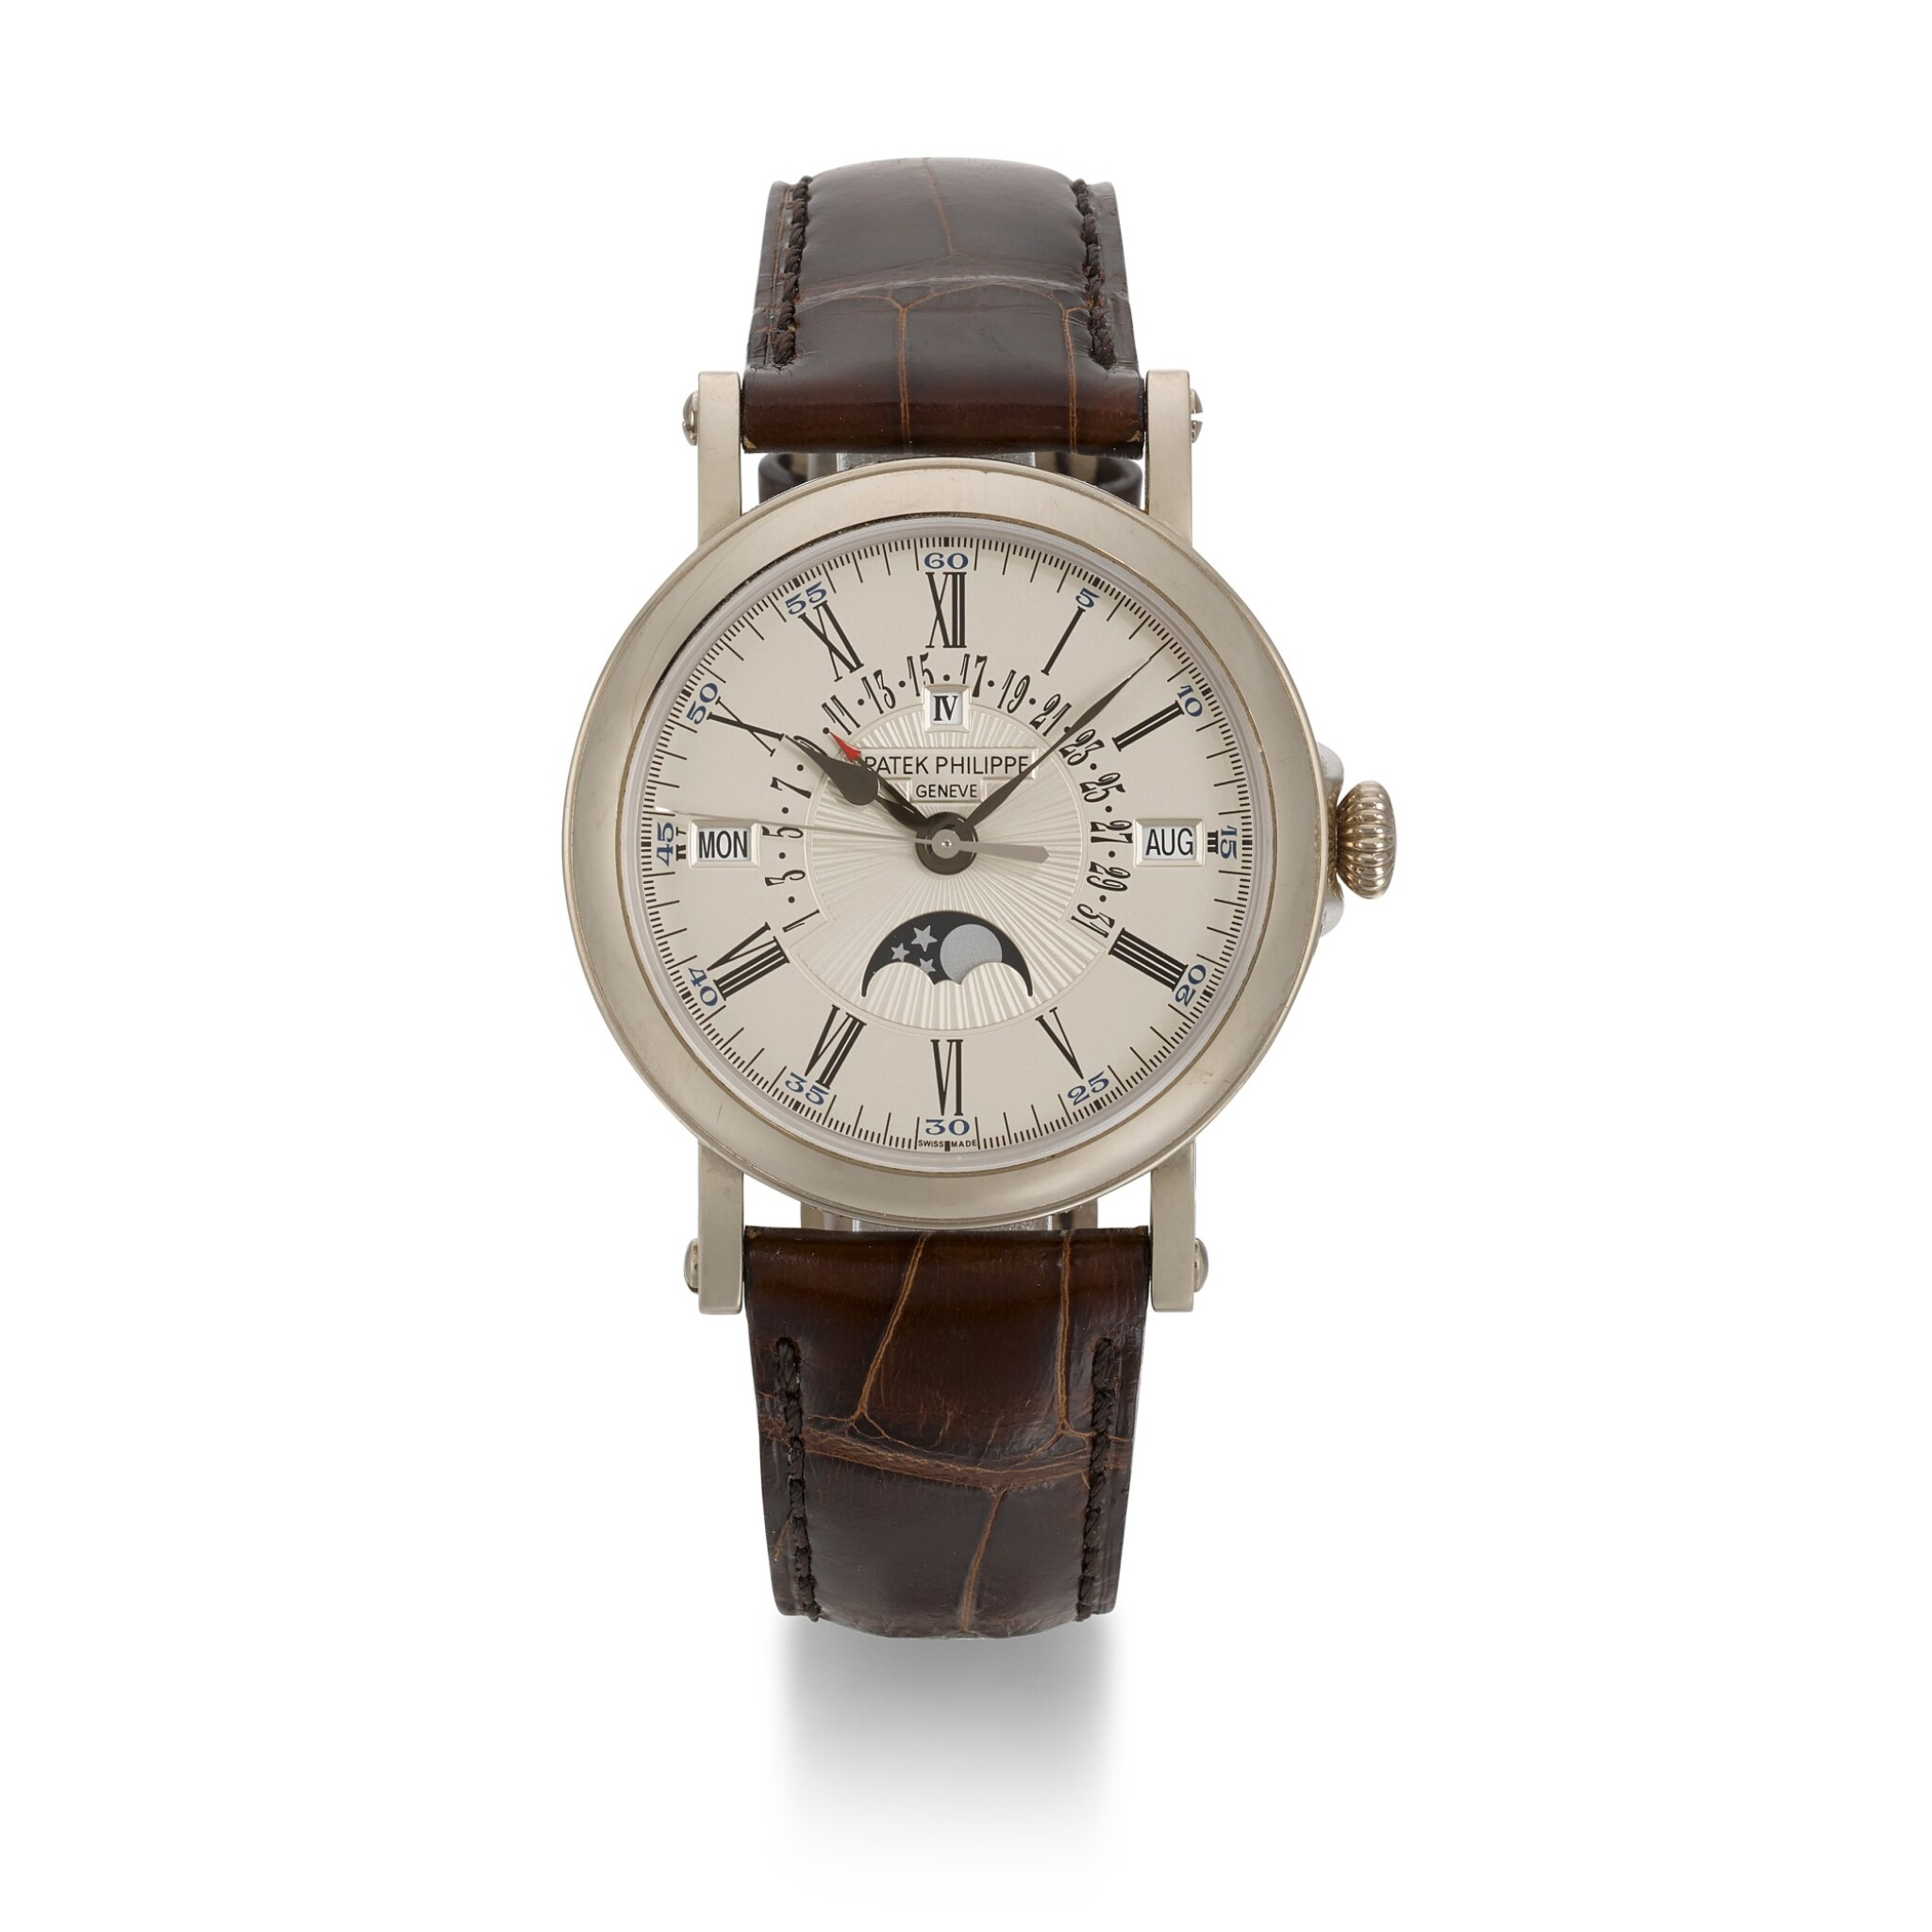 View full screen - View 1 of Lot 348. PATEK PHILIPPE | REFERENCE 5159G, WHITE GOLD PERPETUAL CALENDAR WRISTWATCH, CIRCA 2016.